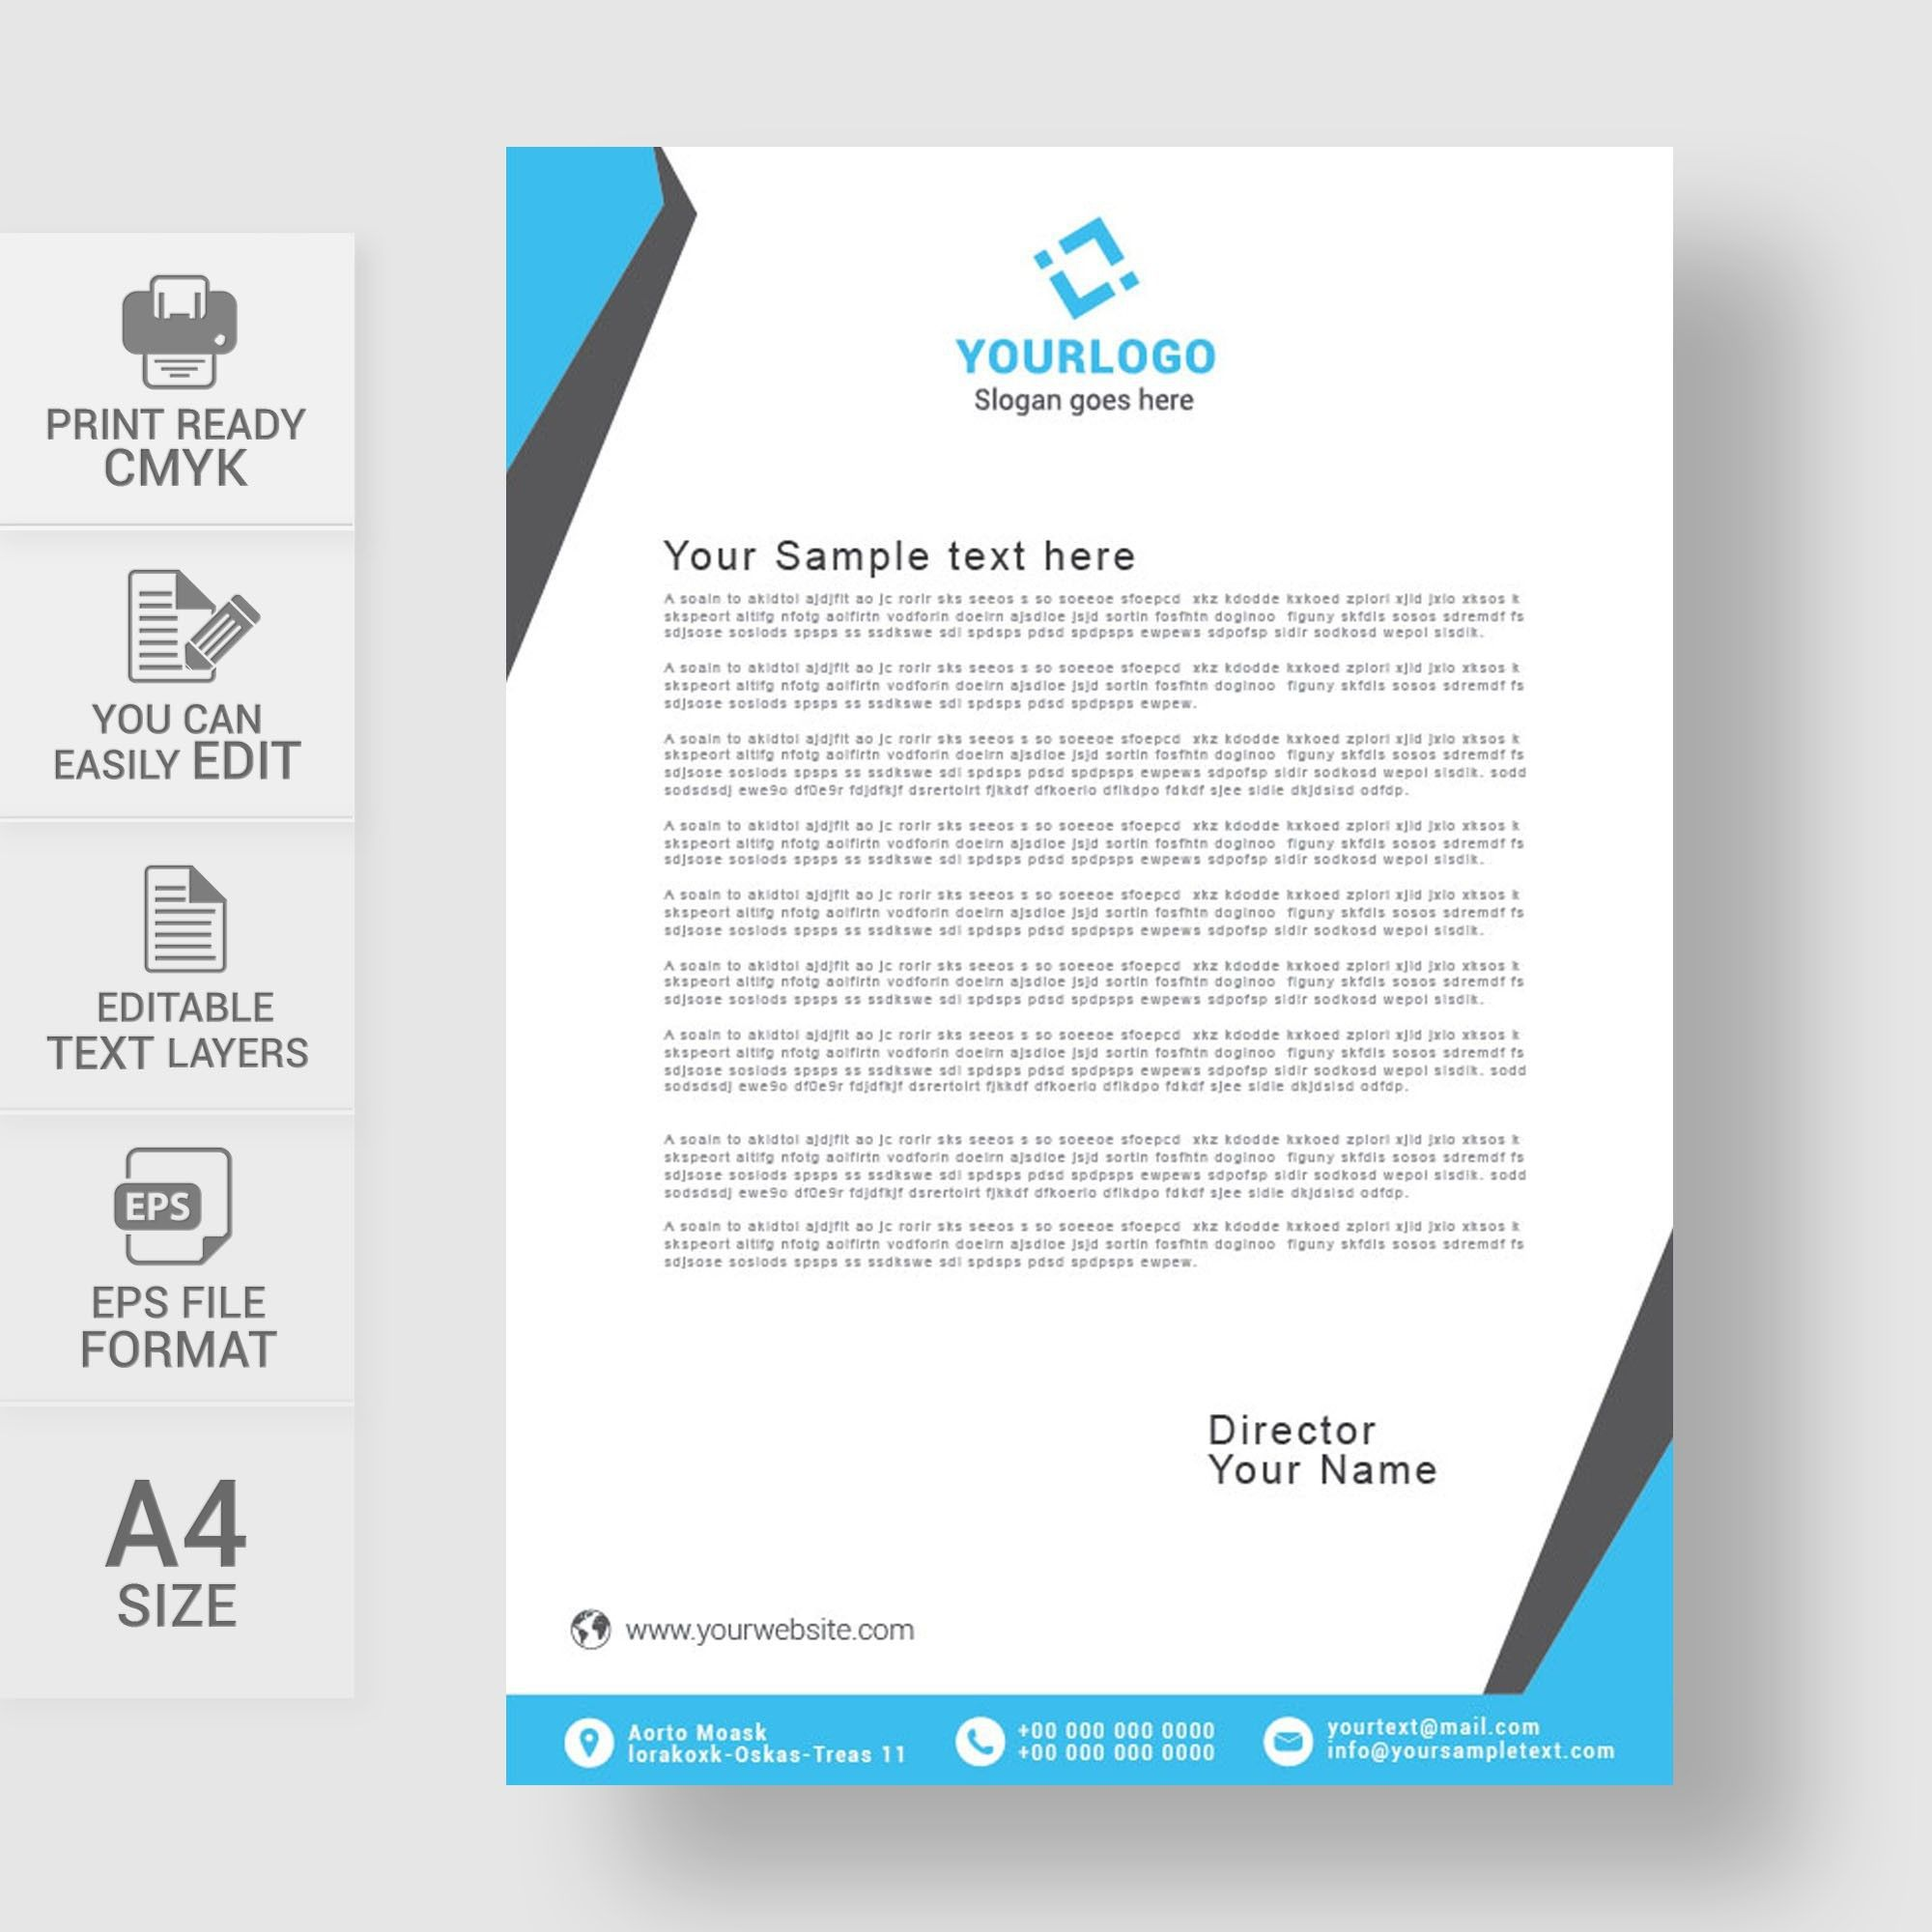 002 Remarkable Company Letterhead Template Word High Def  Busines 2007 Free DownloadFull